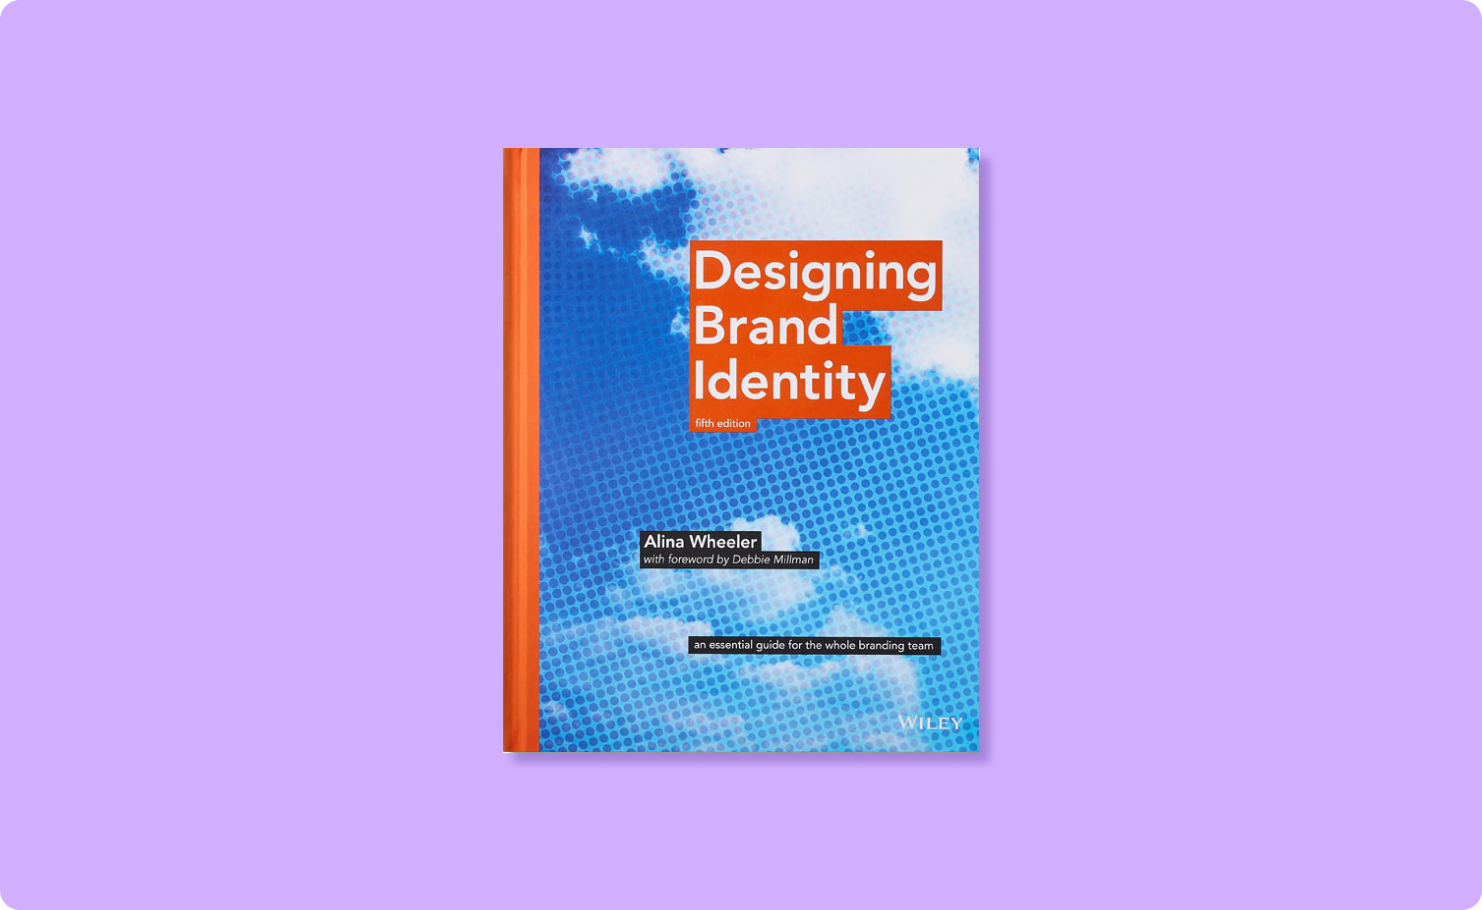 Cover image of the book: Designing Brand Identity